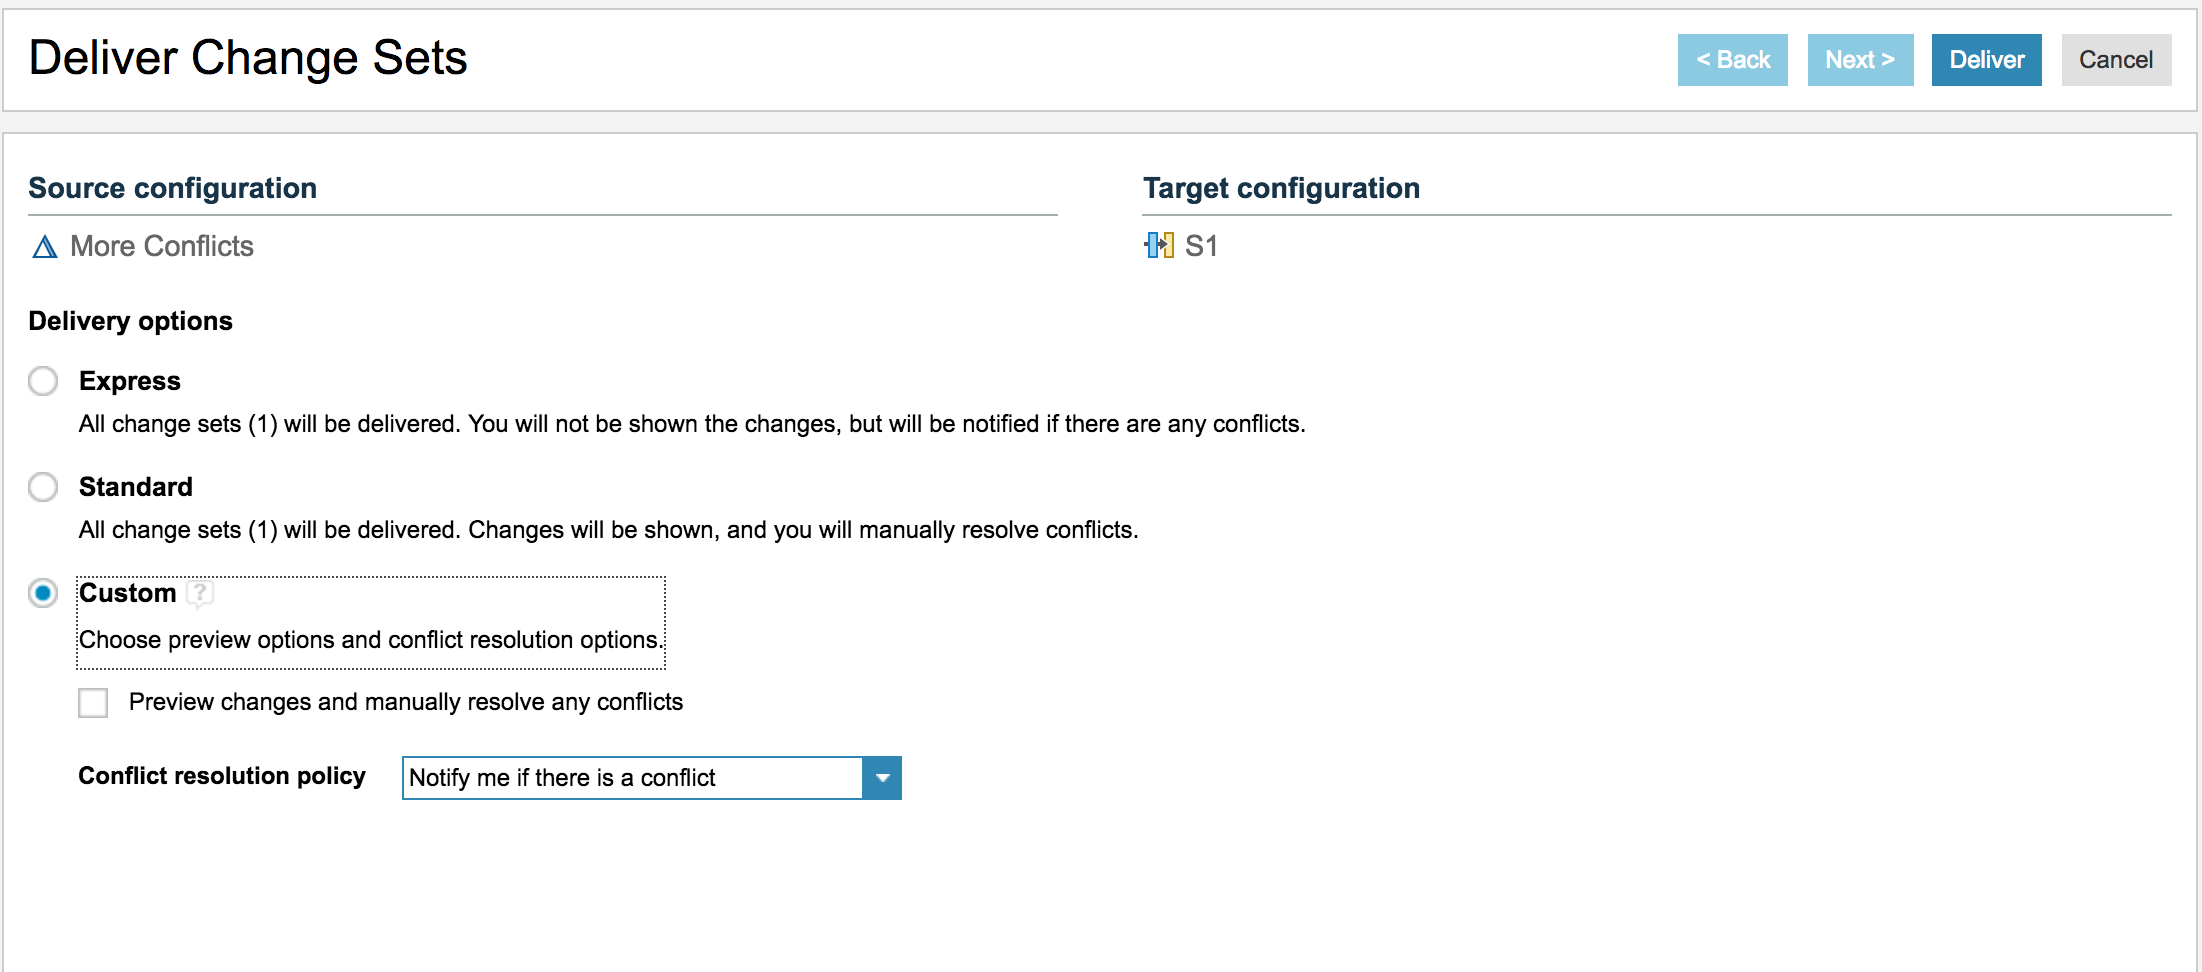 Source configuration options in the Deliver change sets dialog box